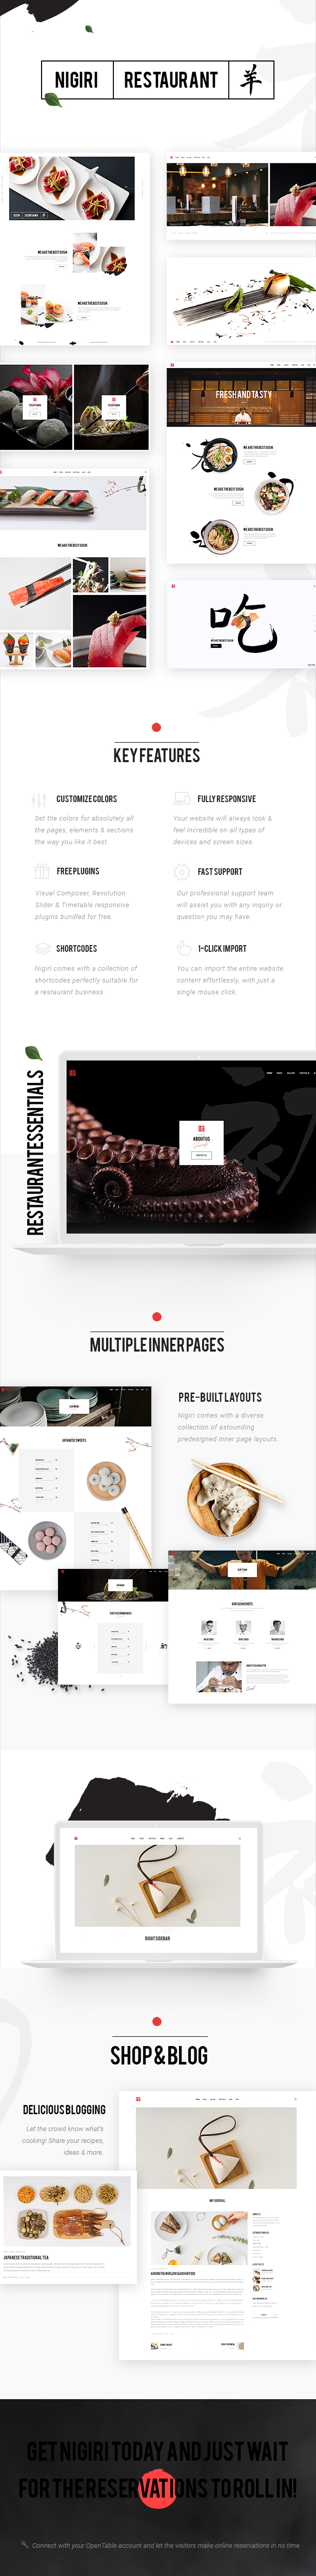 Nigiri - Ein modernes Restaurant WordPress Template